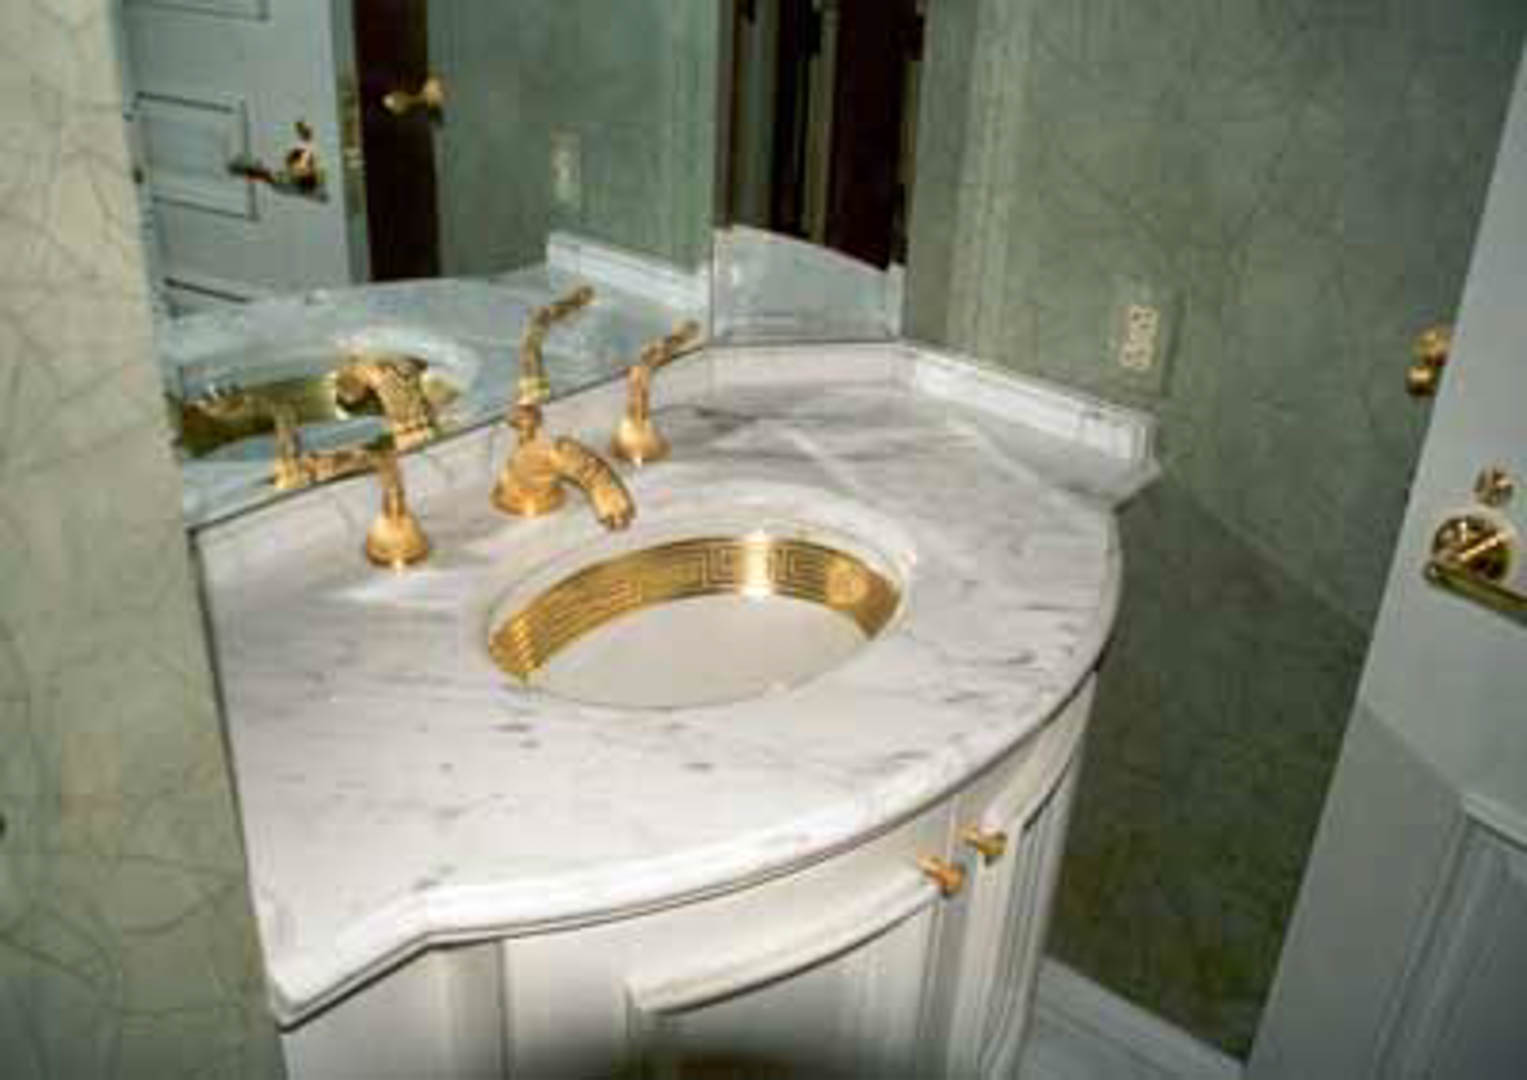 Project:  Caesars Palace Hotel   Location:  Las Vegas, Nevada   Description:   Custom fabrication is an everyday expertise for Carrara Marble Company. Here you see a beautiful marble bathroom vanity top with gold trim and faucet designed for a luxury suite.